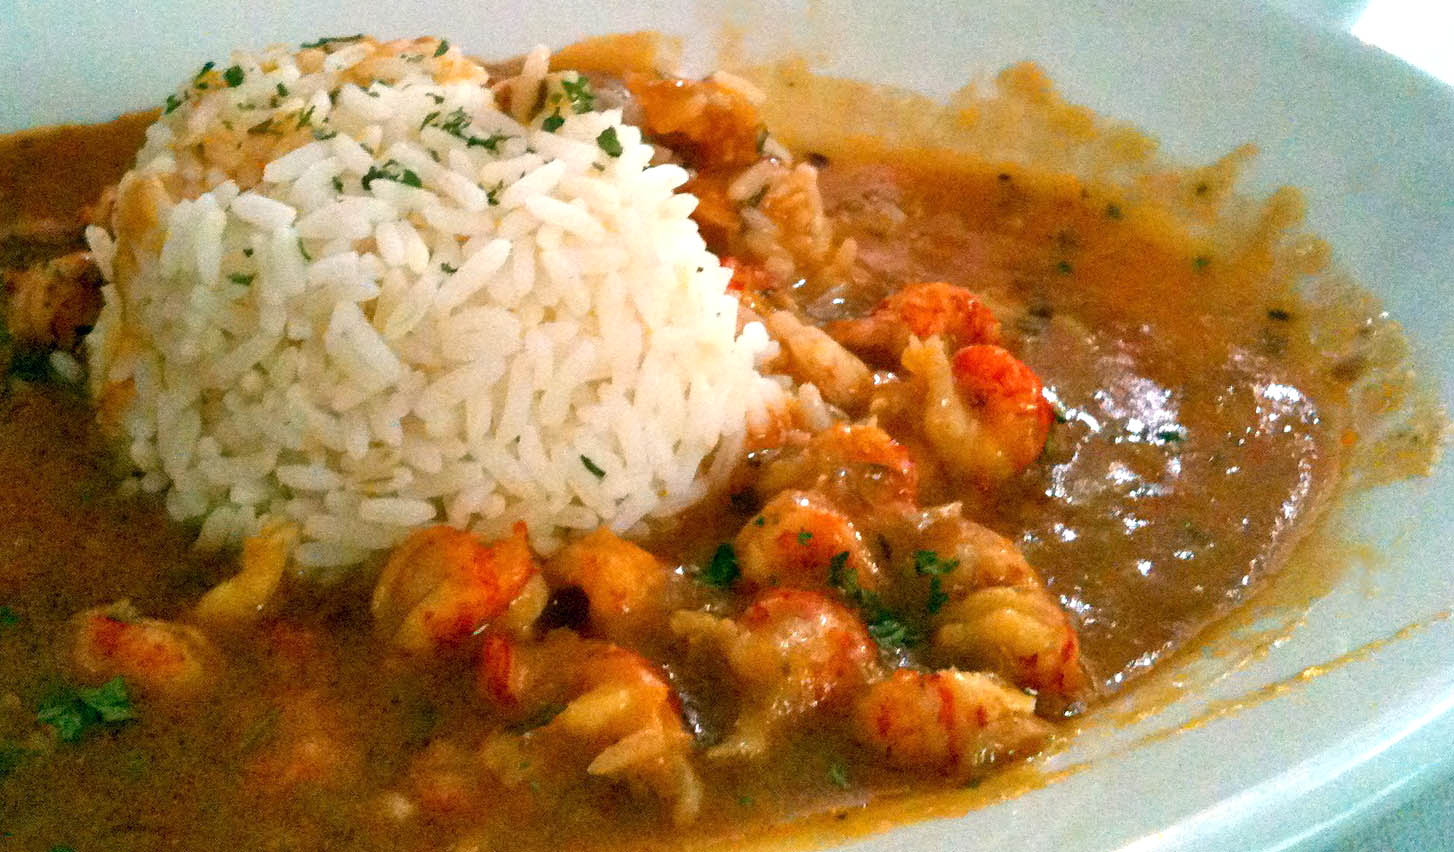 ... Shrimp Etouffee Recipe (or easily make into Crawfish Etouffee